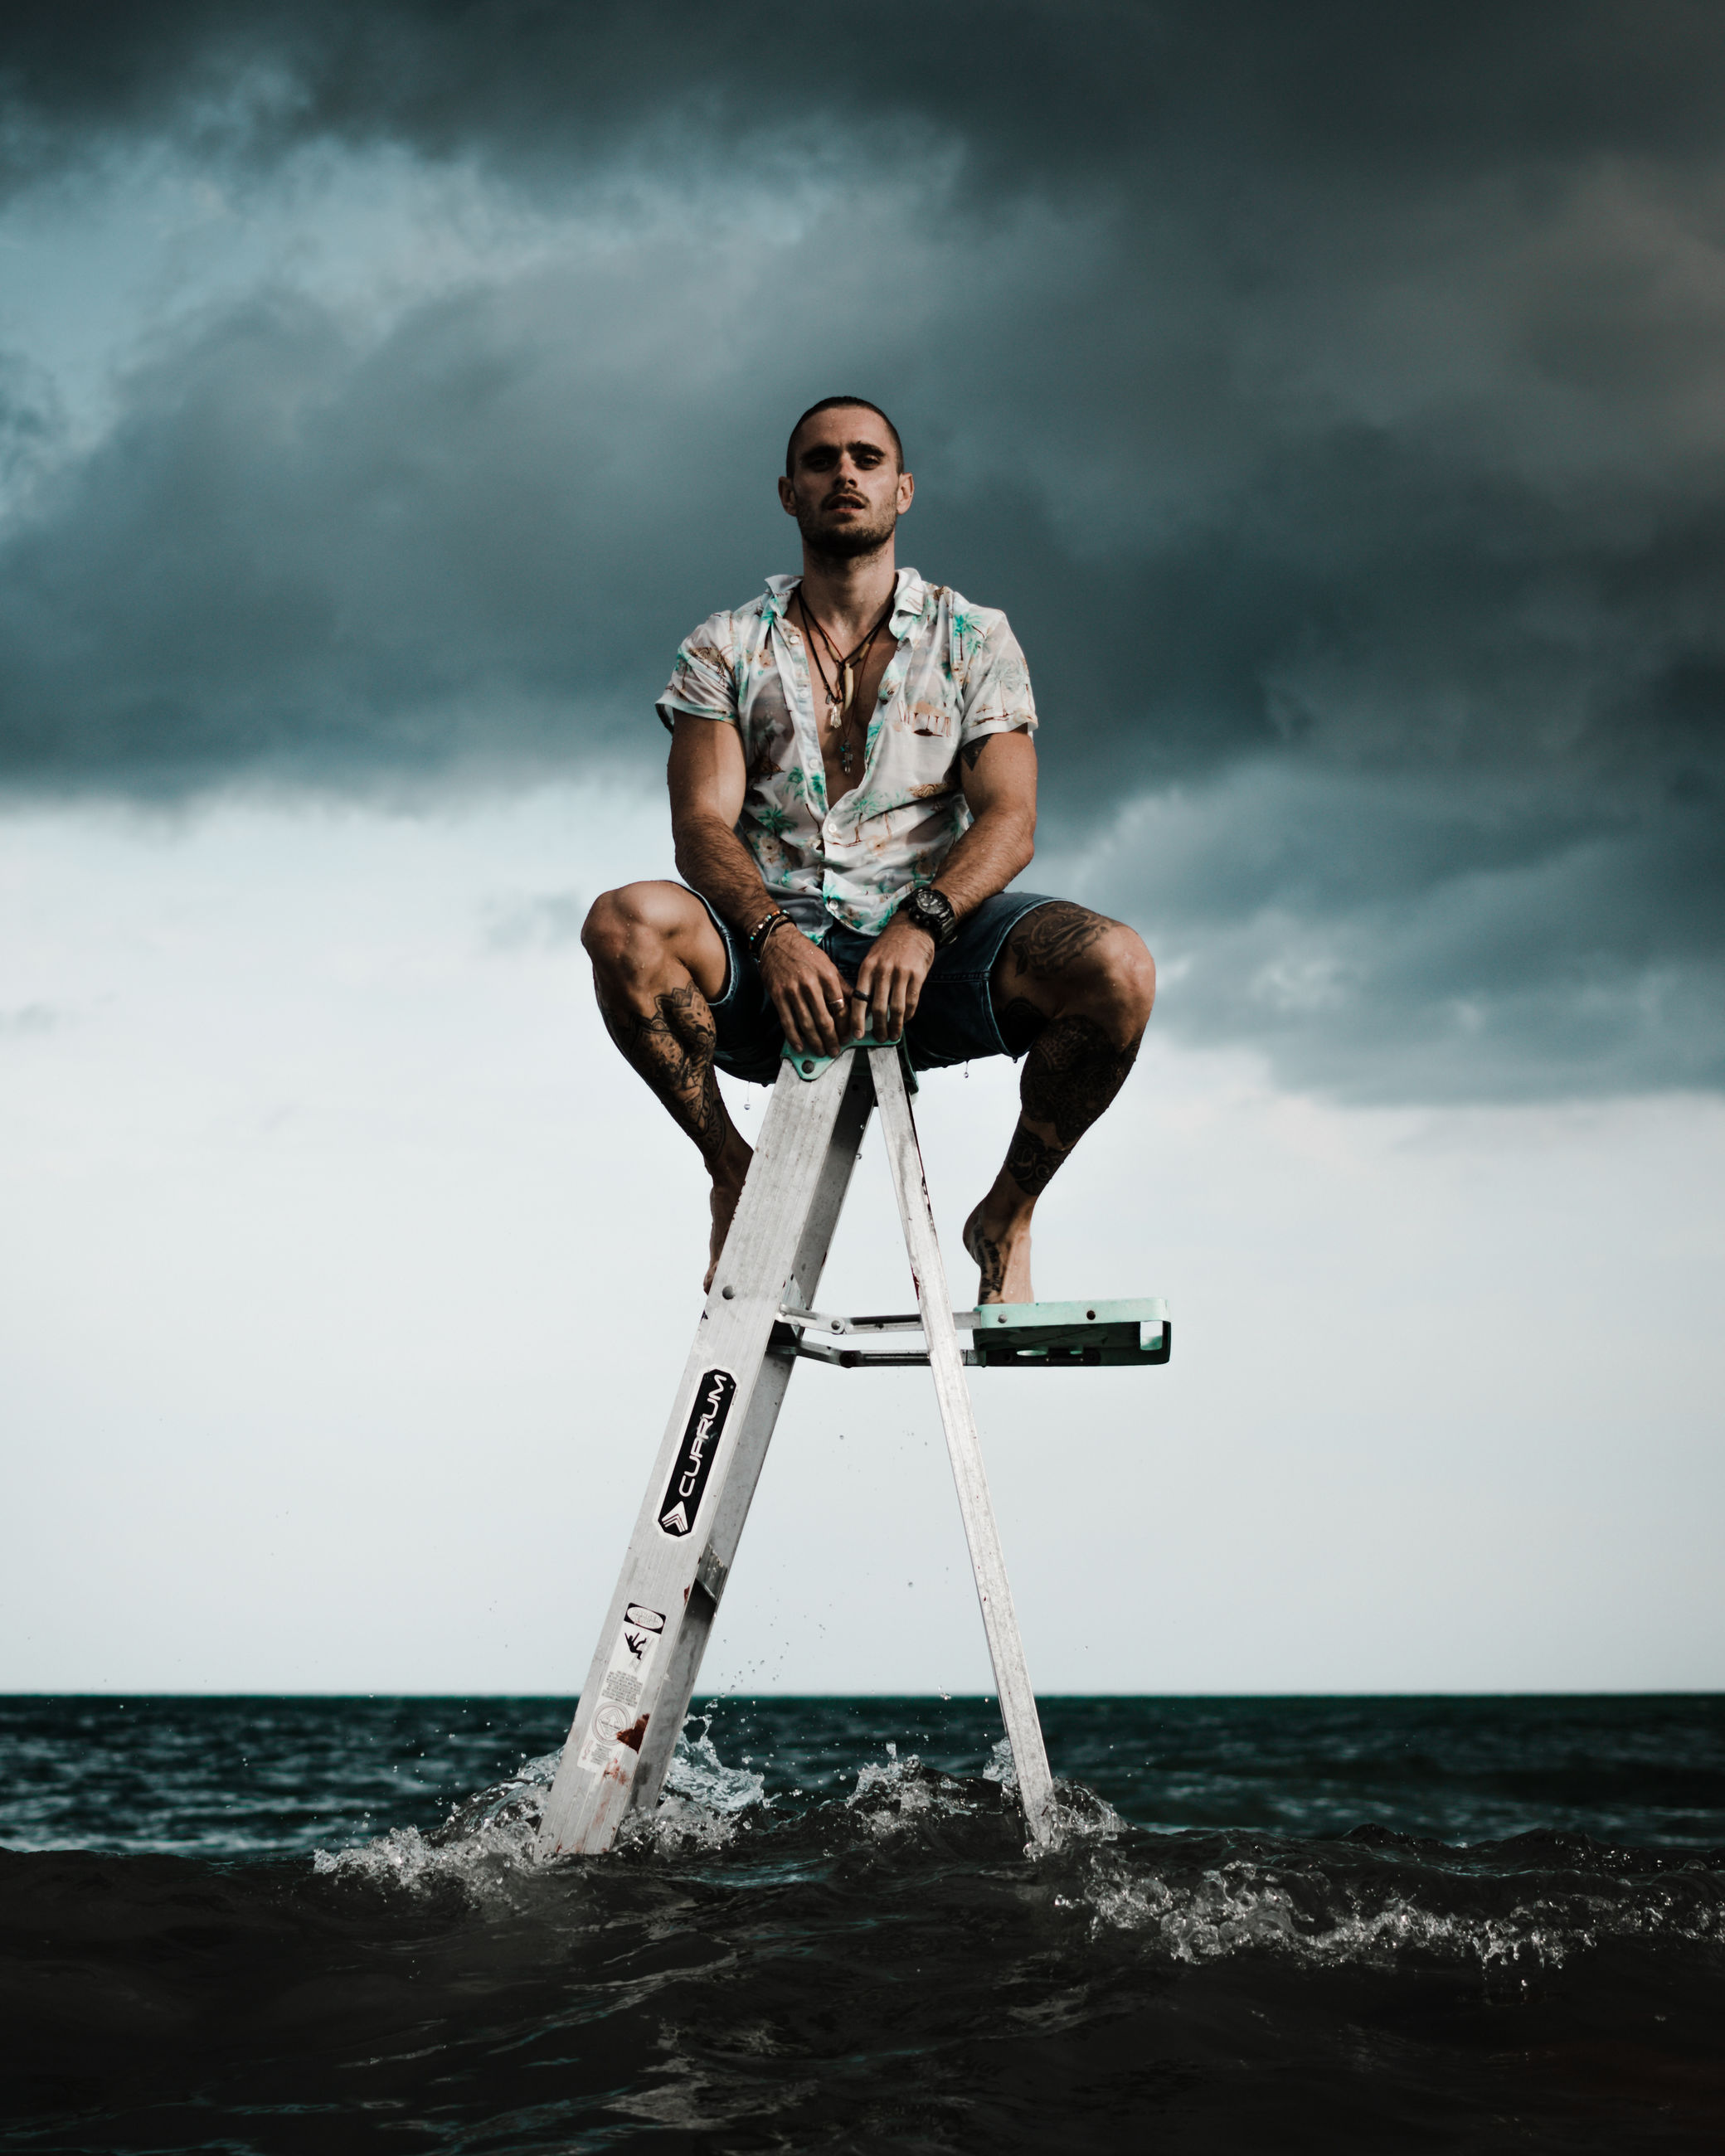 adult, cloud, one person, sky, water, full length, sea, men, nature, sitting, sports, young adult, overcast, copy space, storm, ocean, person, land, ladder, strength, outdoors, storm cloud, horizon over water, horizon, blue, holding, motion, surfing